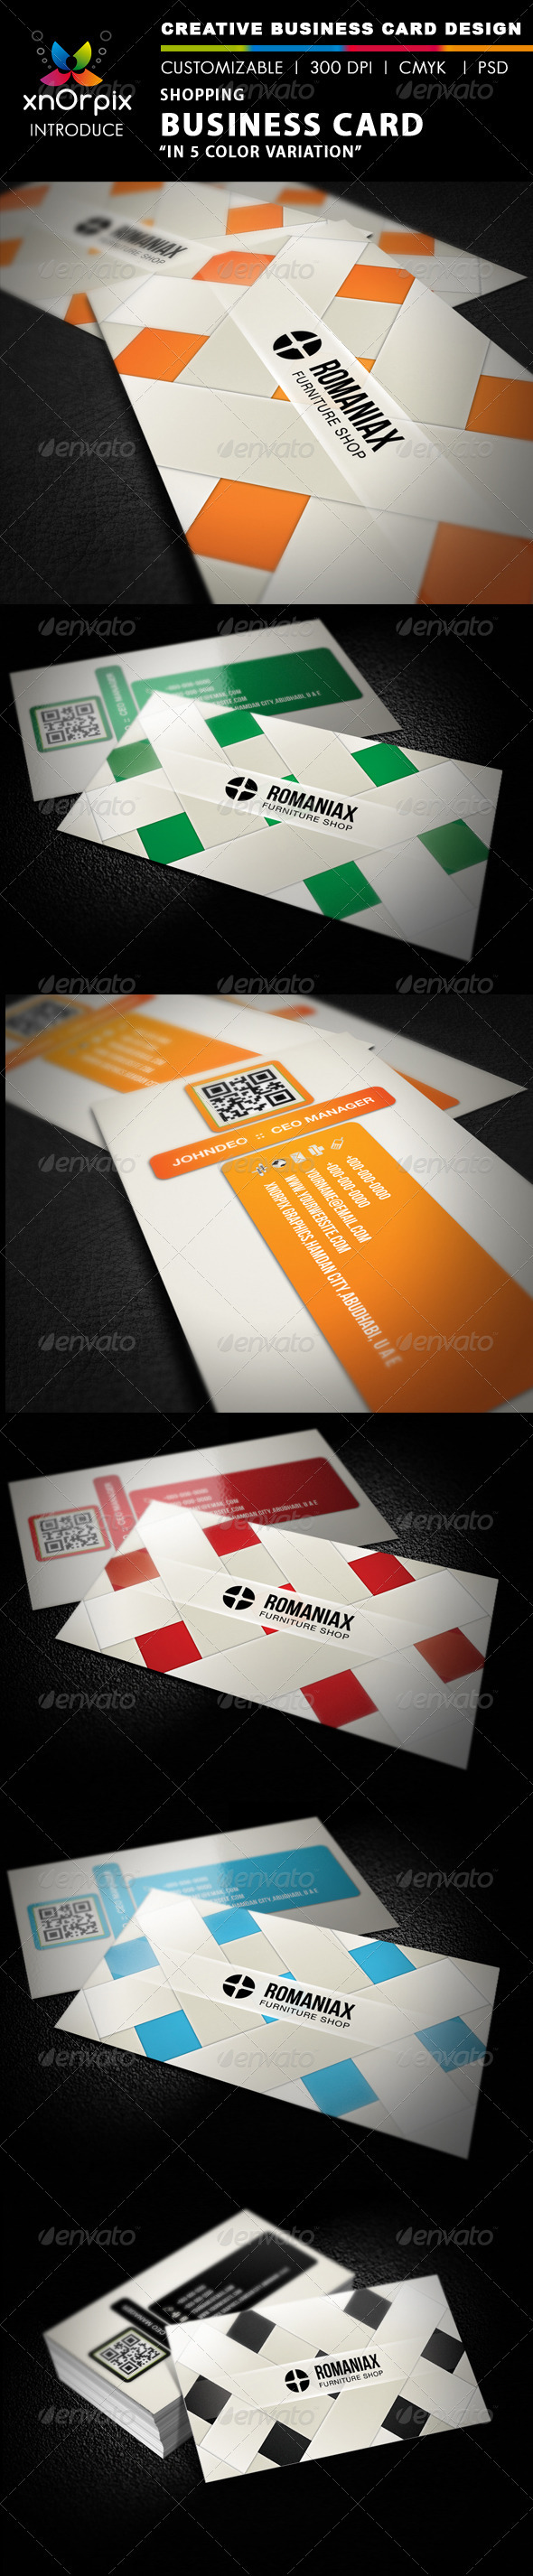 Shopping Business Card - Corporate Business Cards